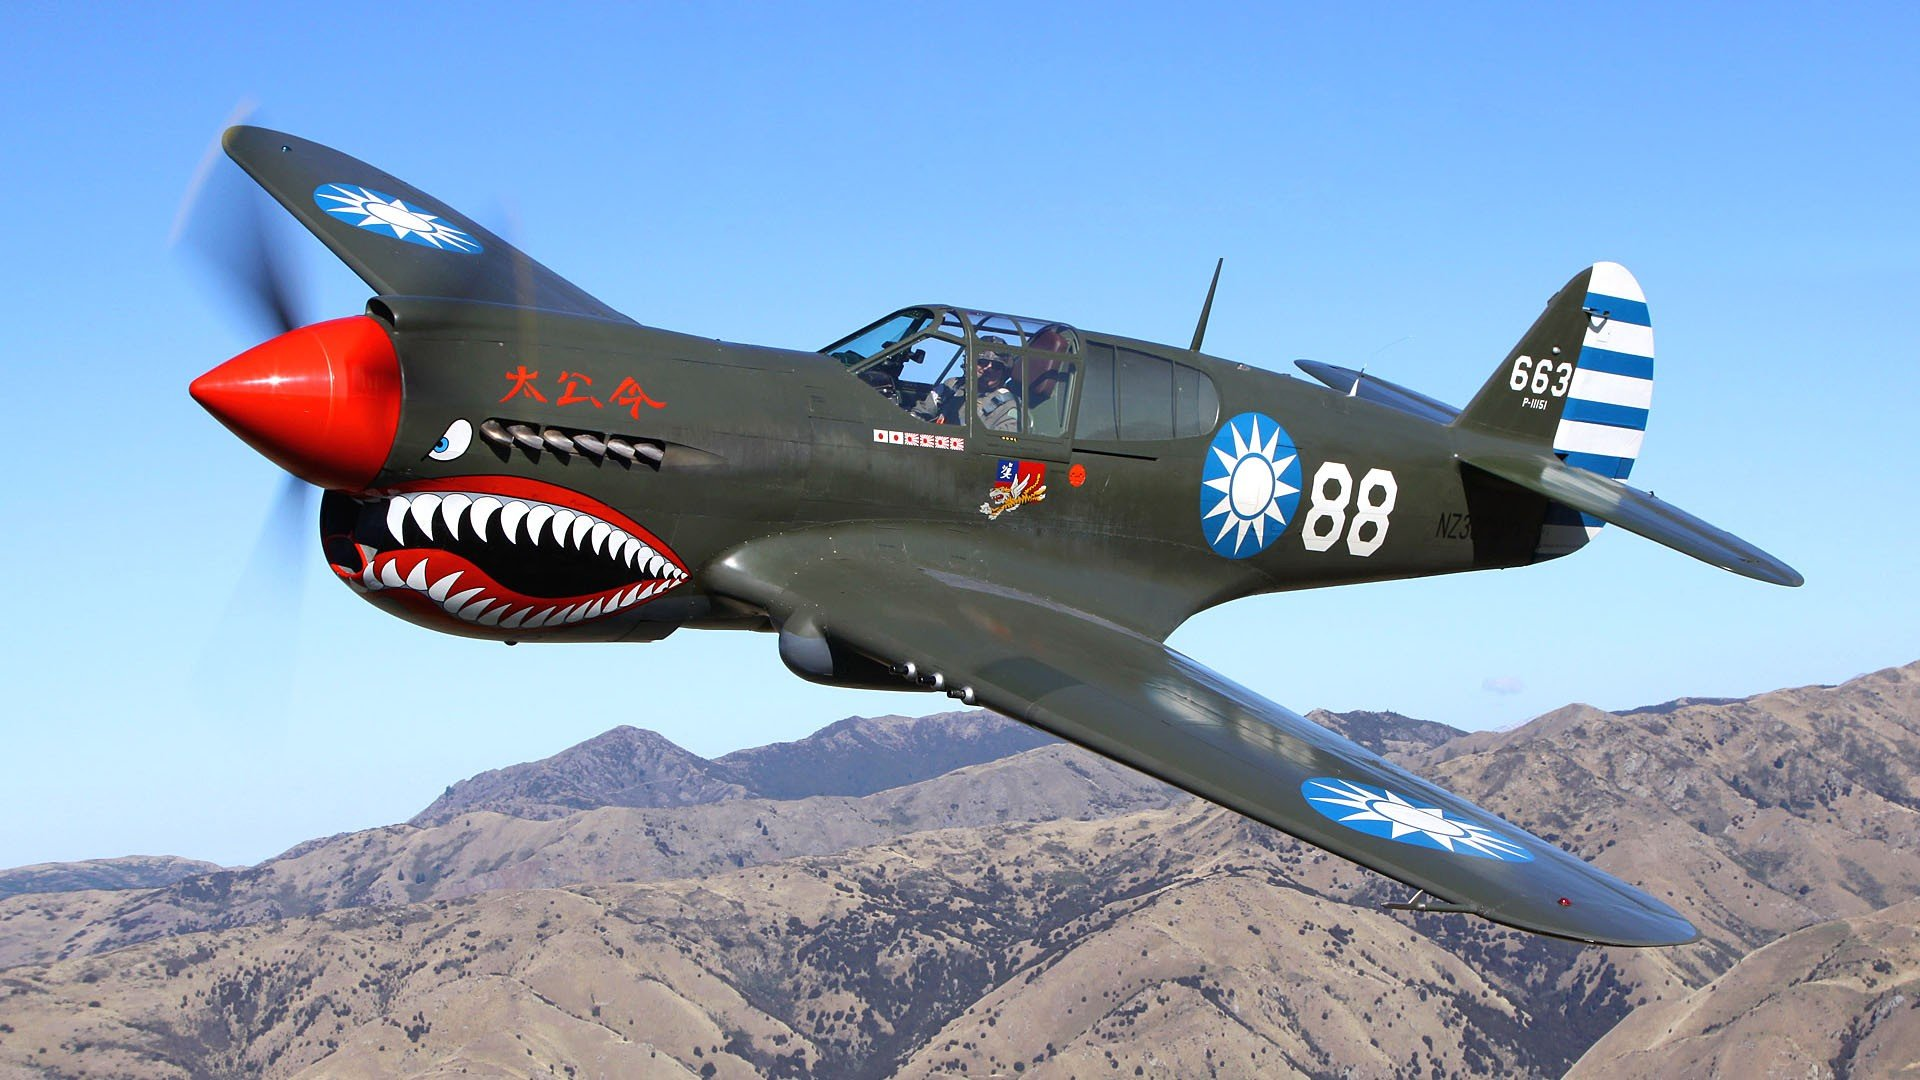 40 Wwii Fighter Planes Wallpapers 1920x1080 On Wallpapersafari